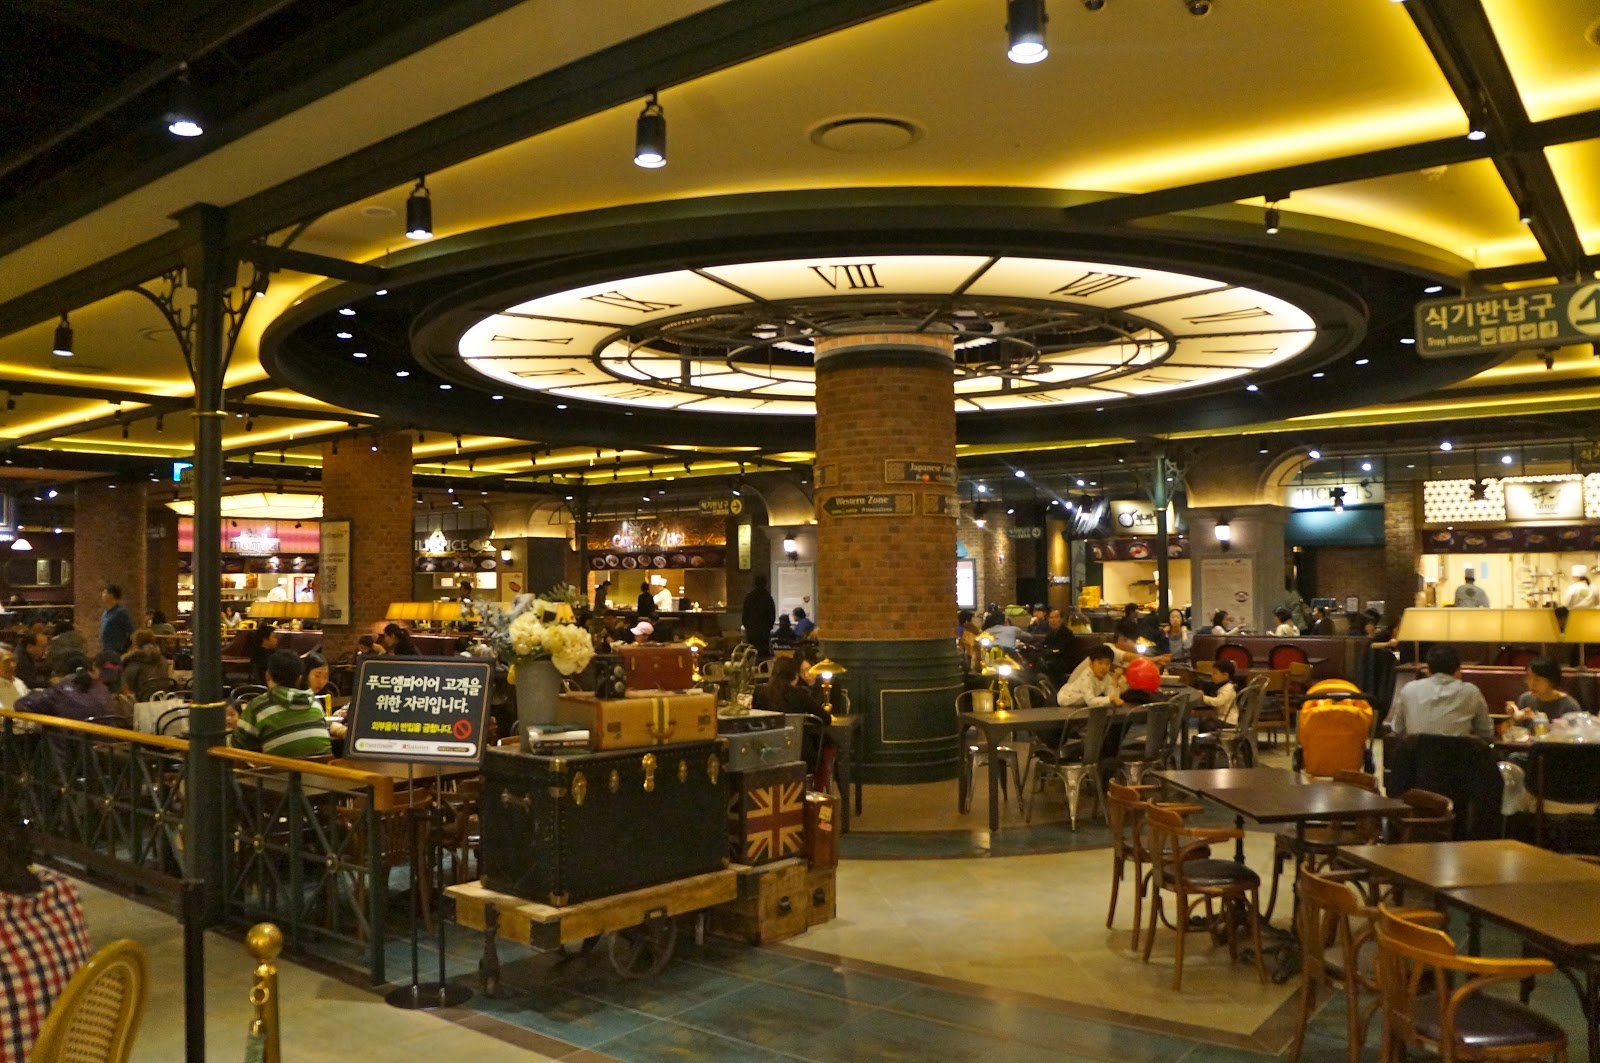 Ifc Mall Seoul Food Court